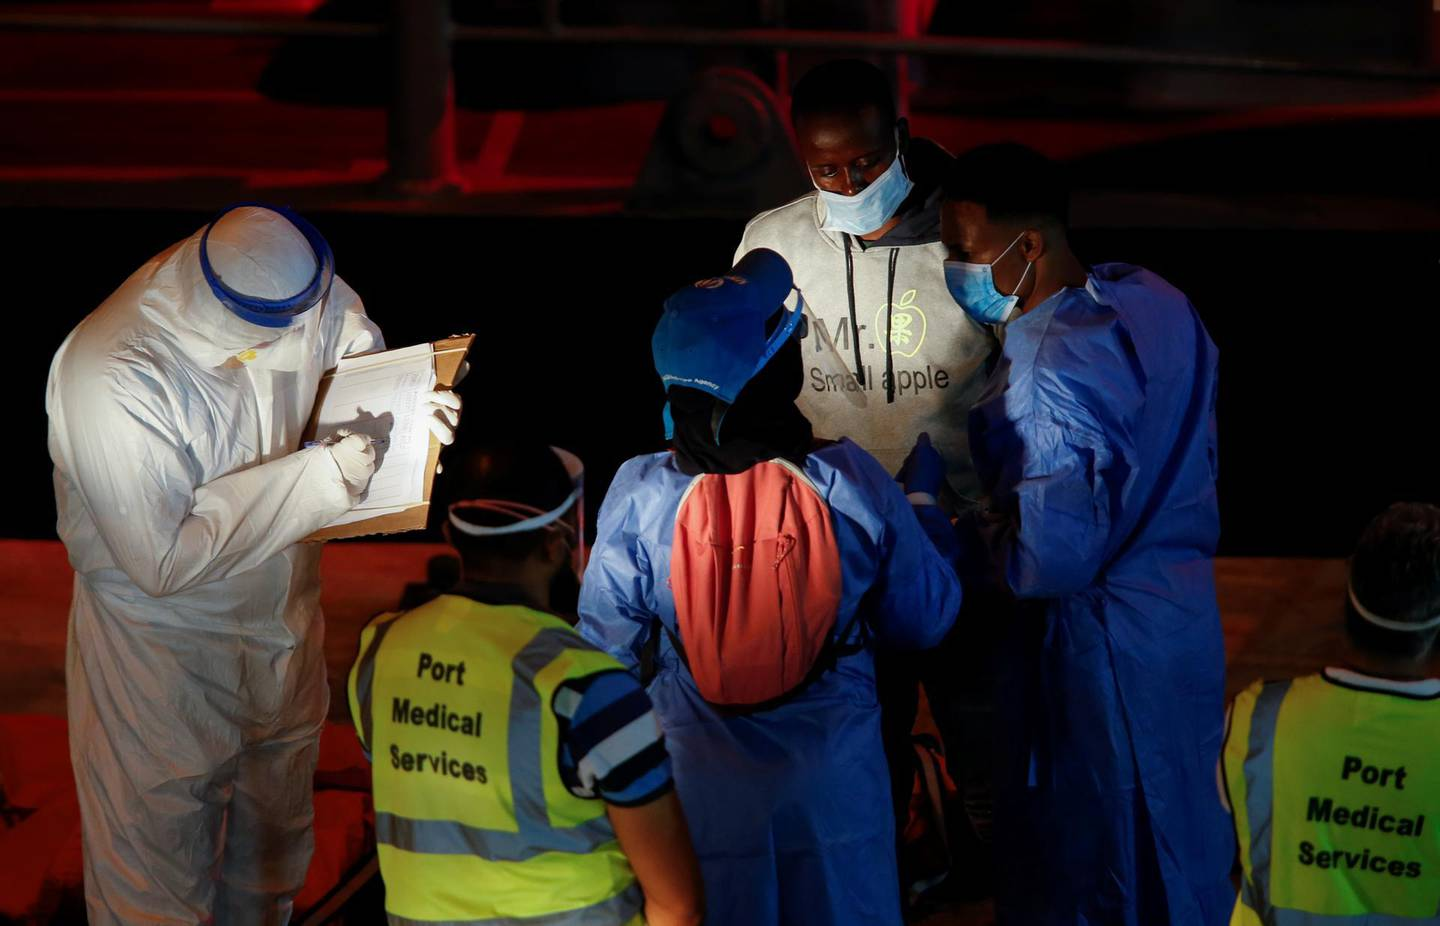 A rescued migrant is being checked by United Nations High Commissioner for Refugees (UNHCR) workers upon his arrival in Senglea, in Valletta's Grand Harbour, as the coronavirus disease (COVID-19) outbreak continues, Malta July 27, 2020. REUTERS/Darrin Zammit Lupi